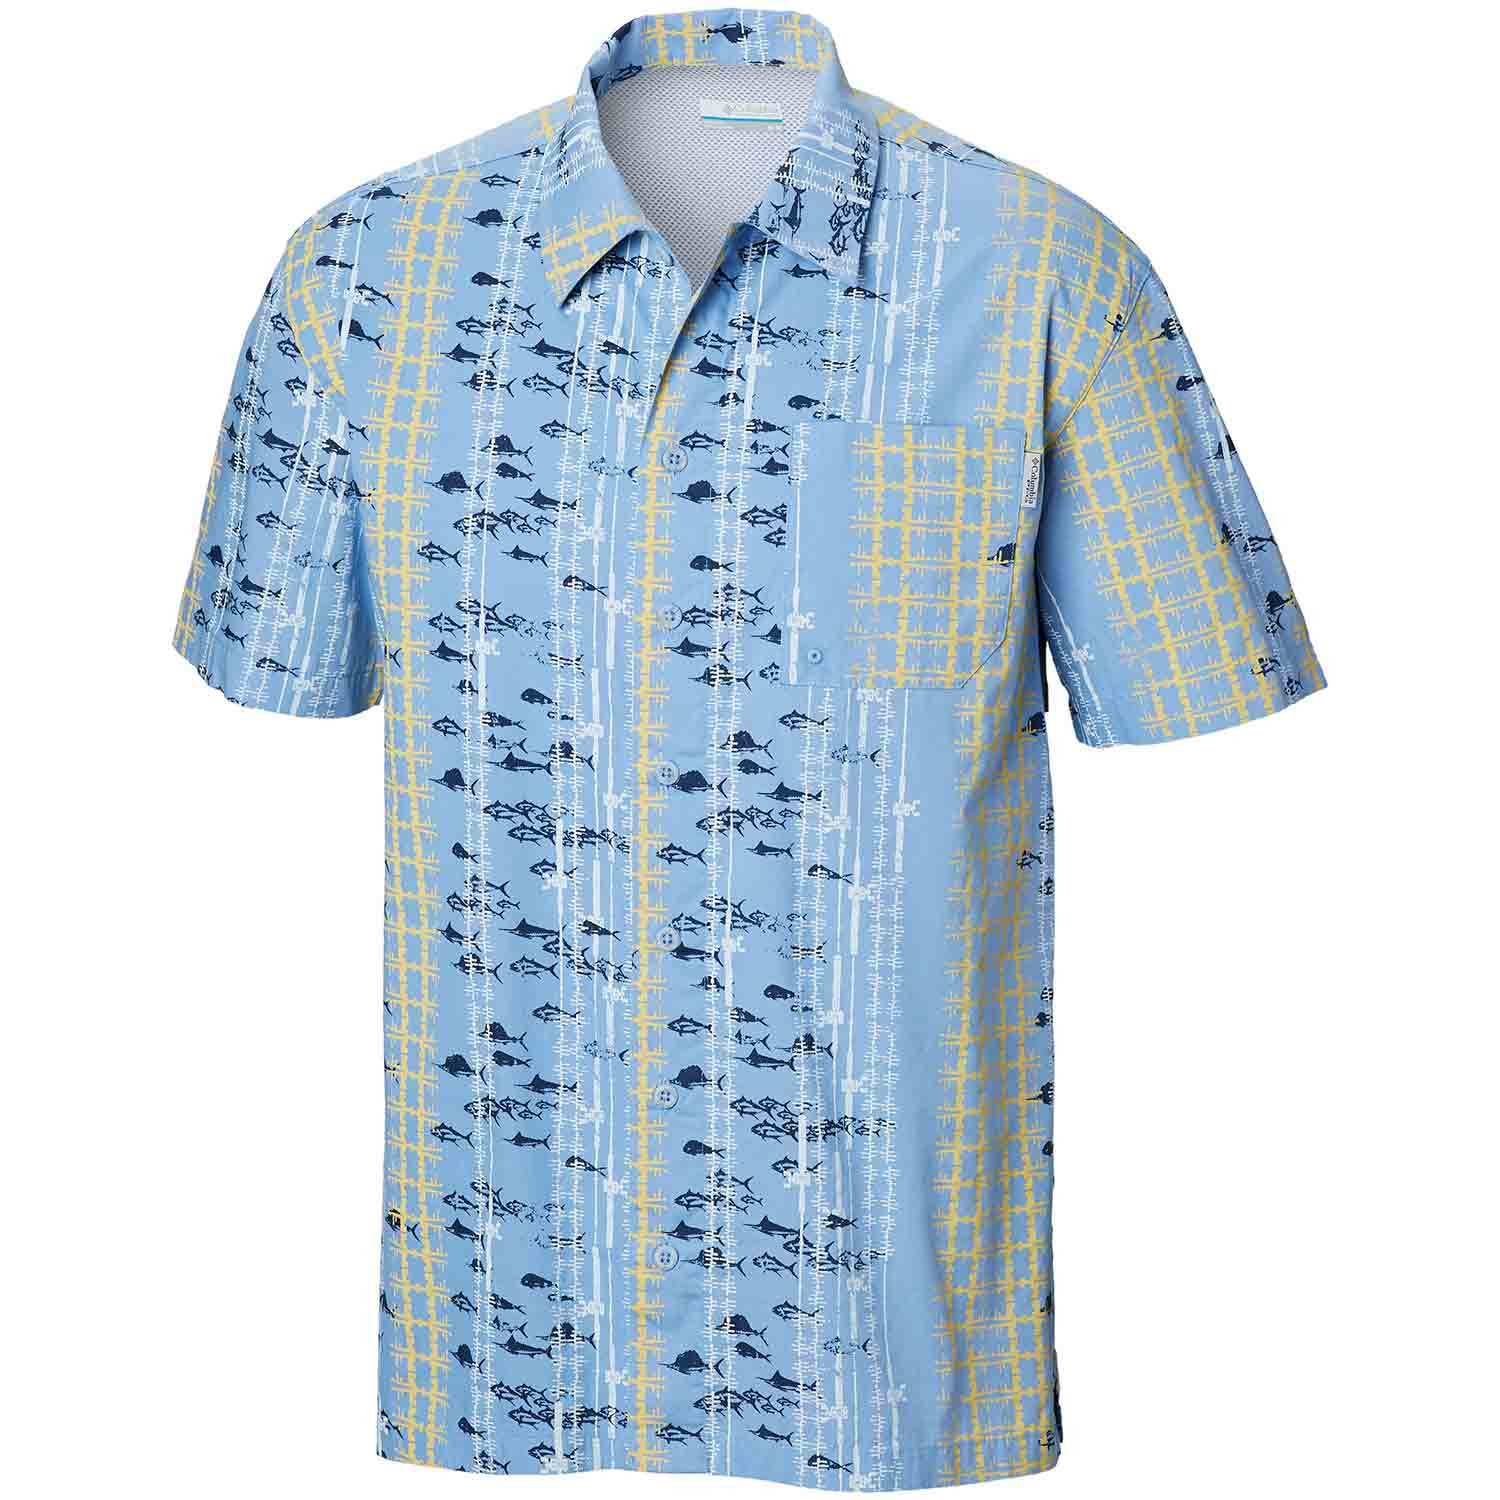 2790e97af86 COLUMBIA Men s Trollers Best™ Shirt